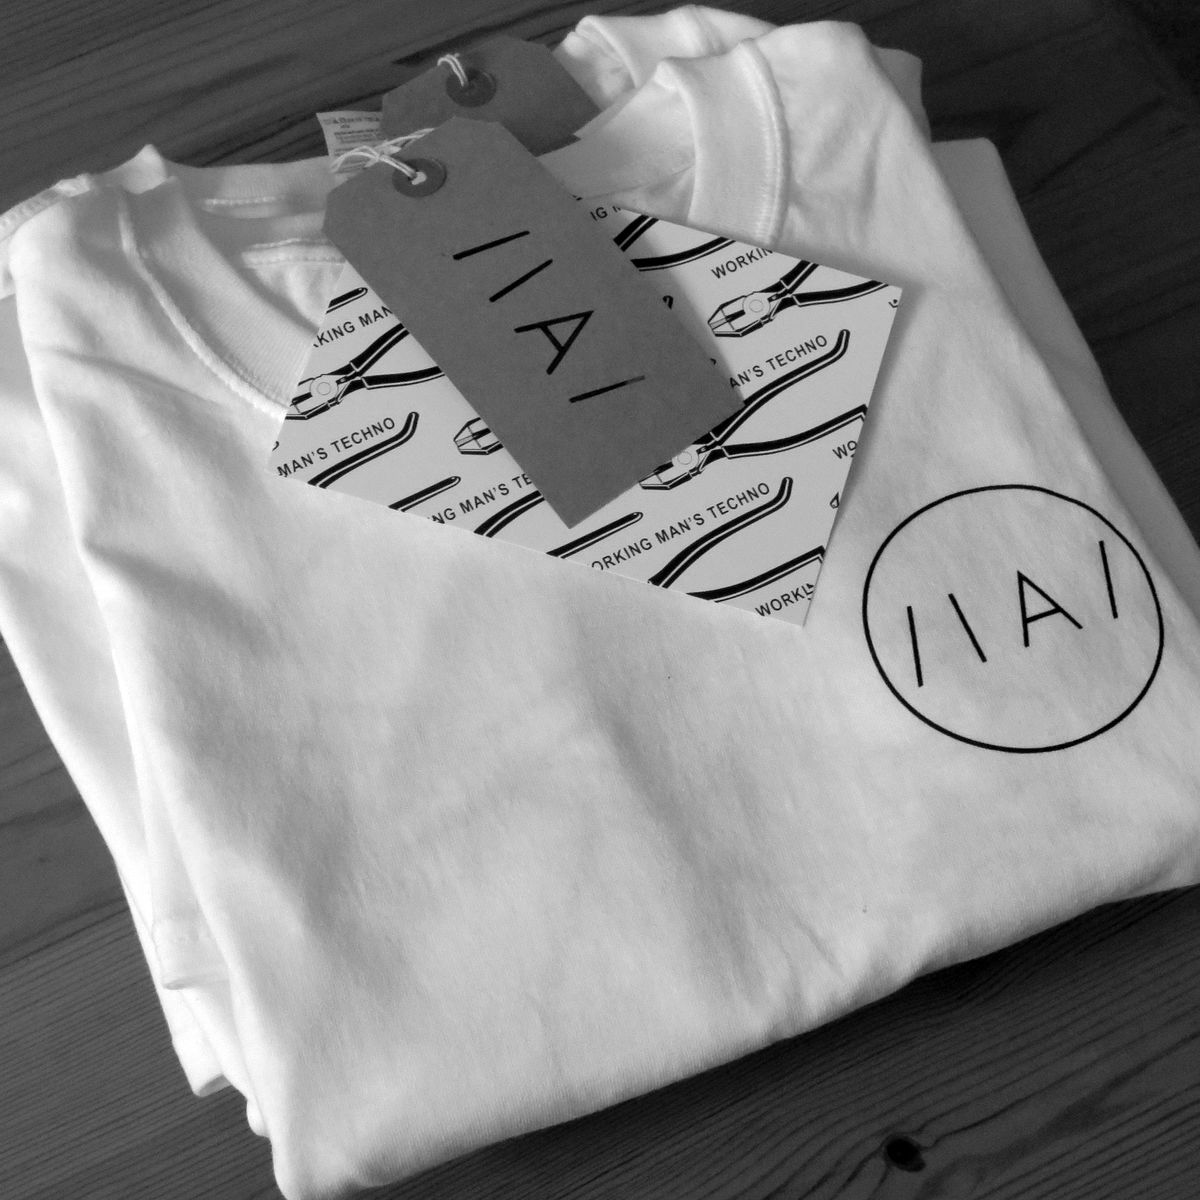 Inverted Audio x White Material T-Shirt - product images  of